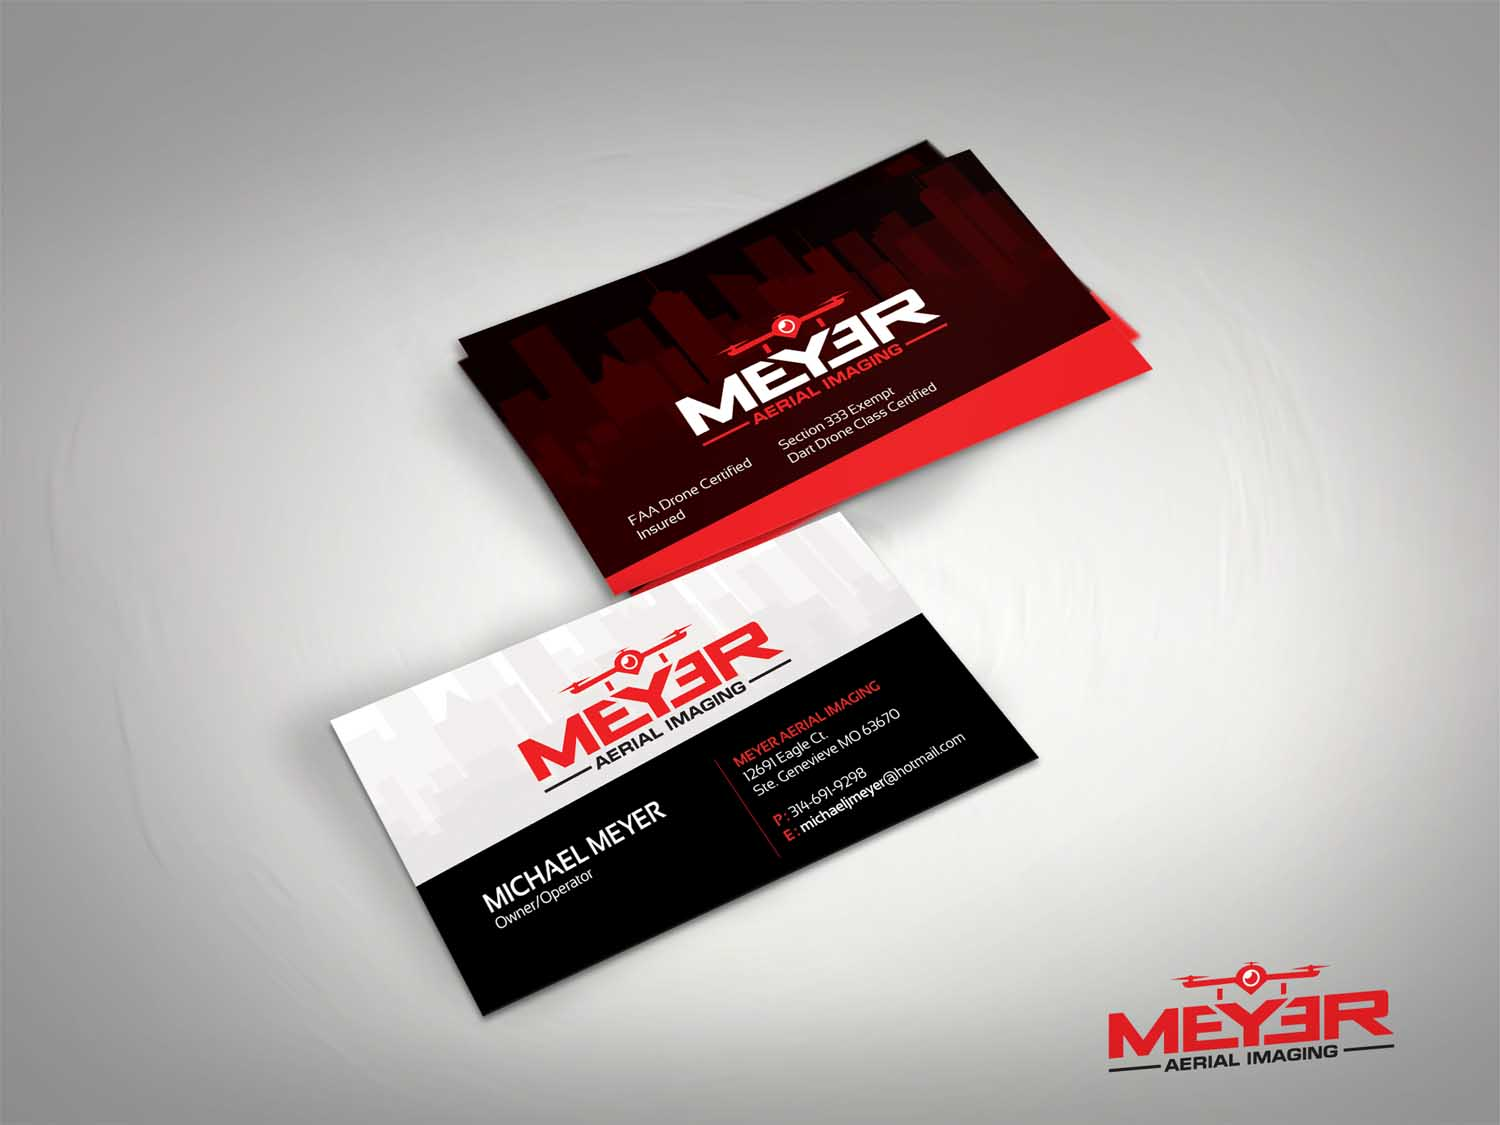 80 Serious Modern Videography Business Card Designs for a ...